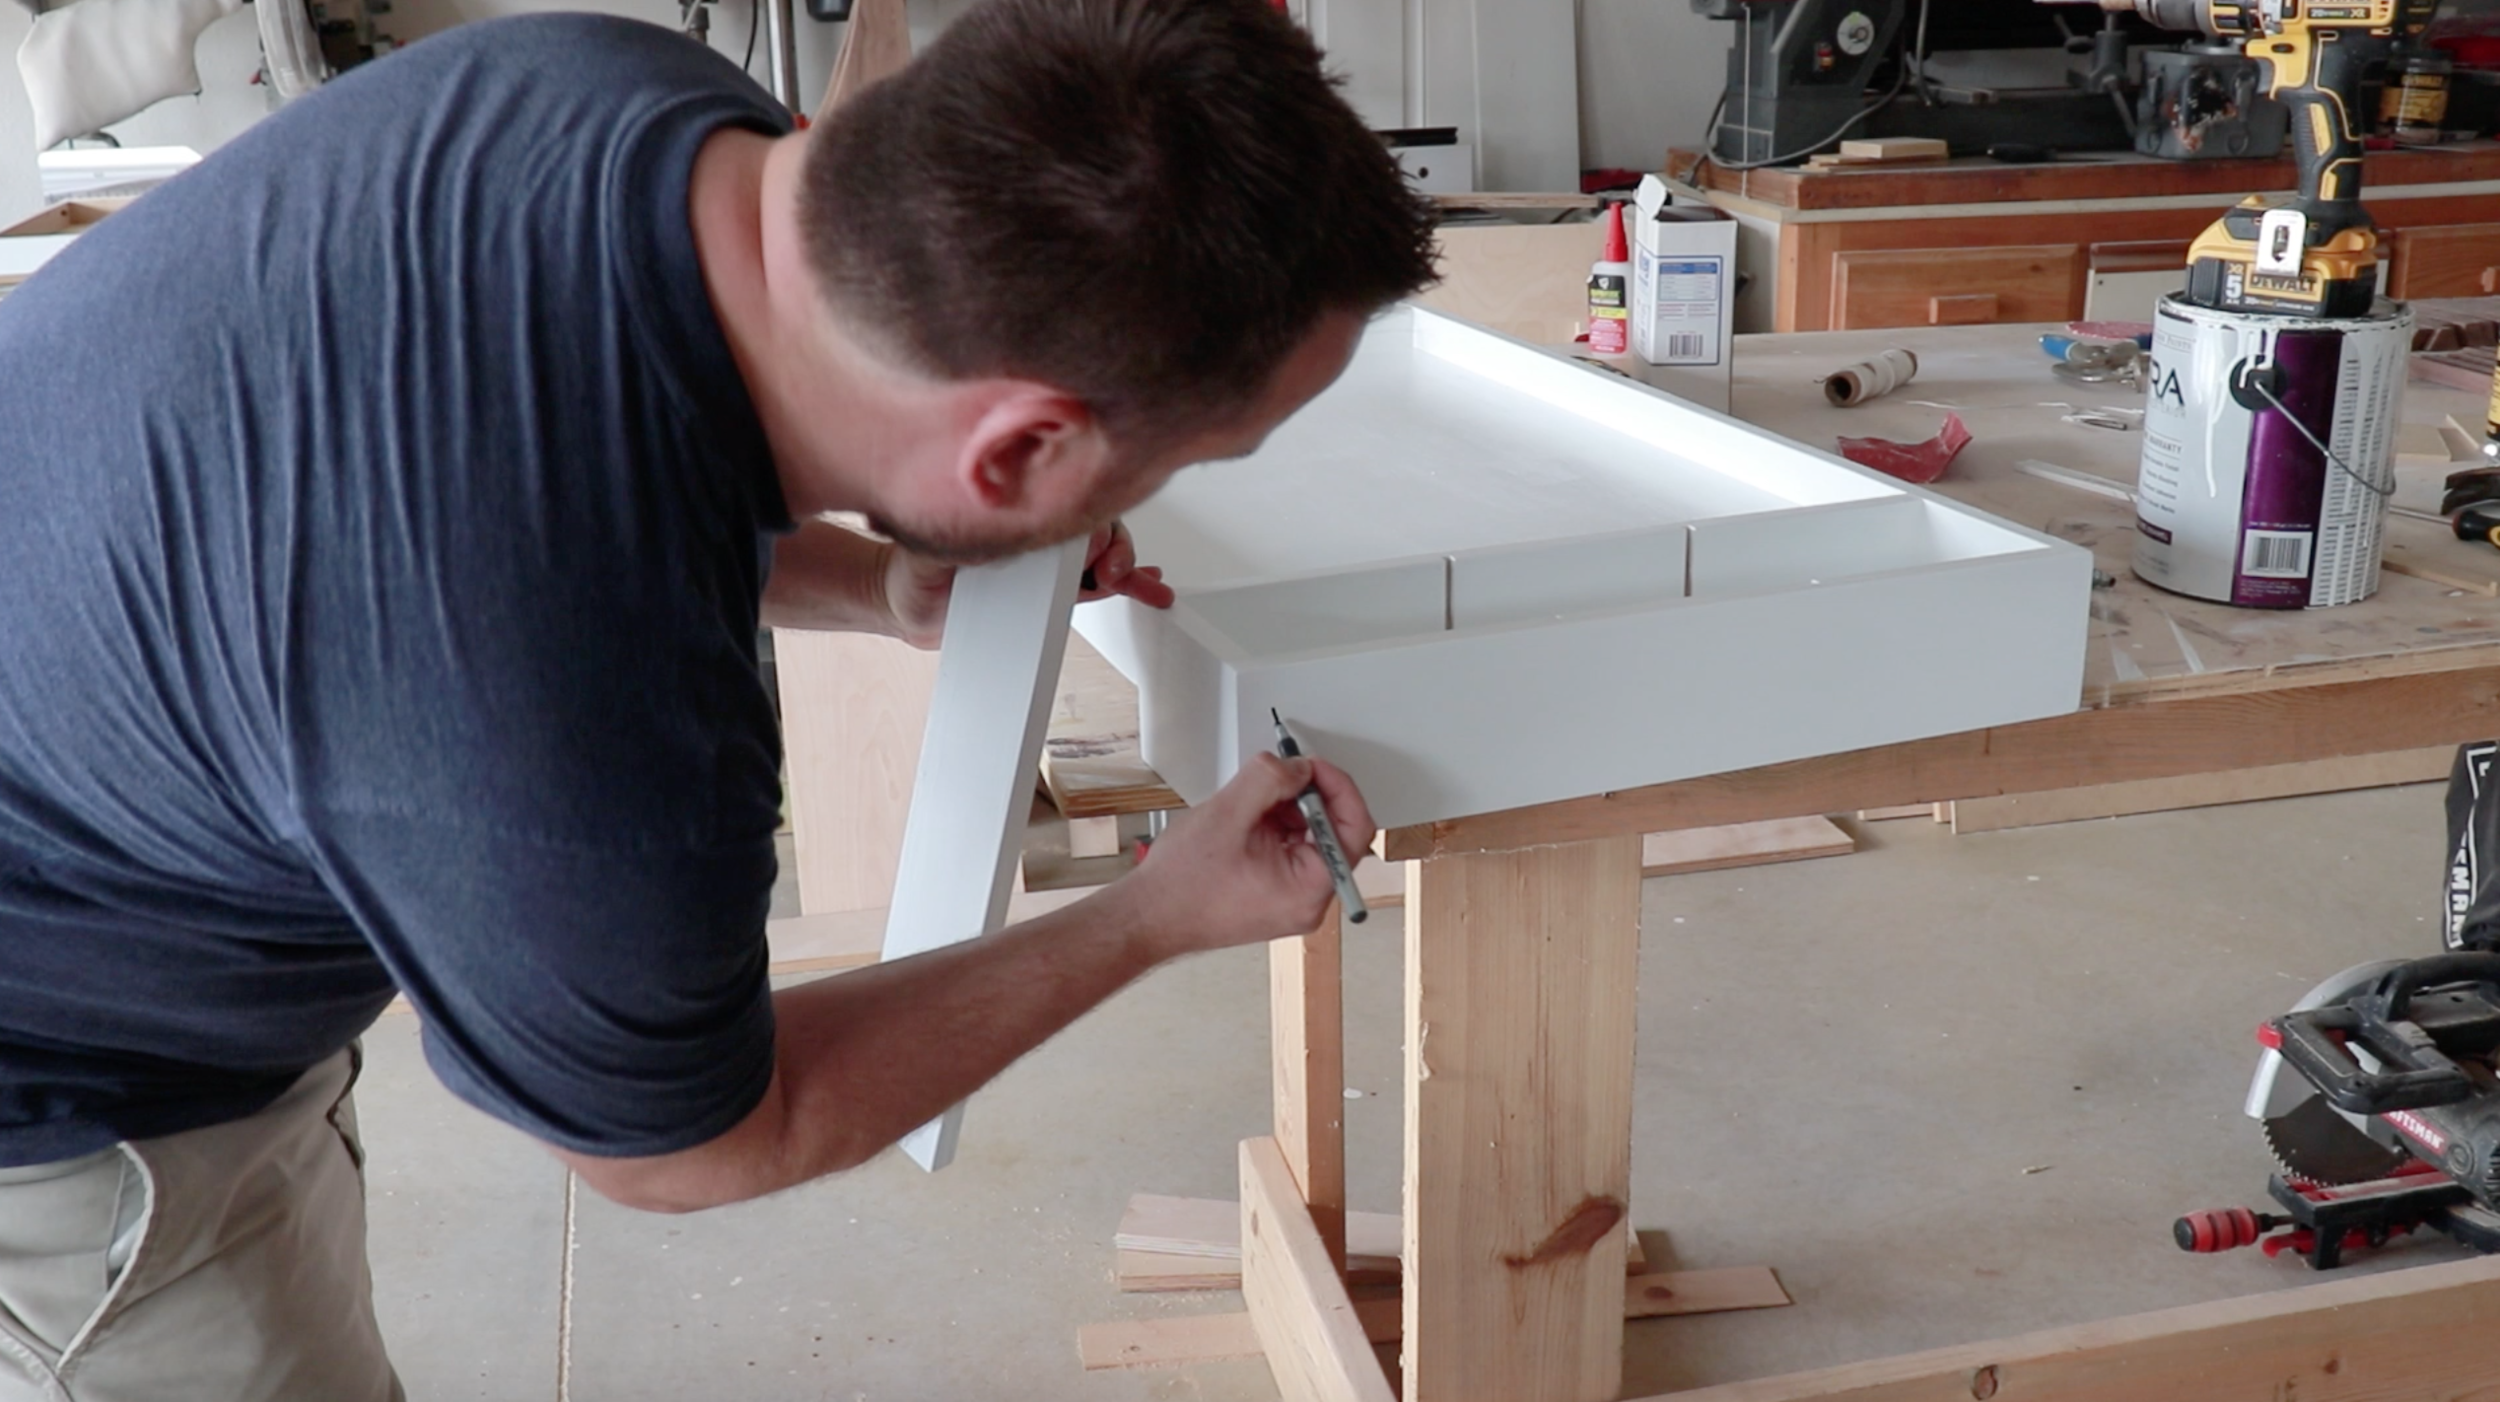 Installing the legs to the Lego table. Marking the side to keep track of the legs.